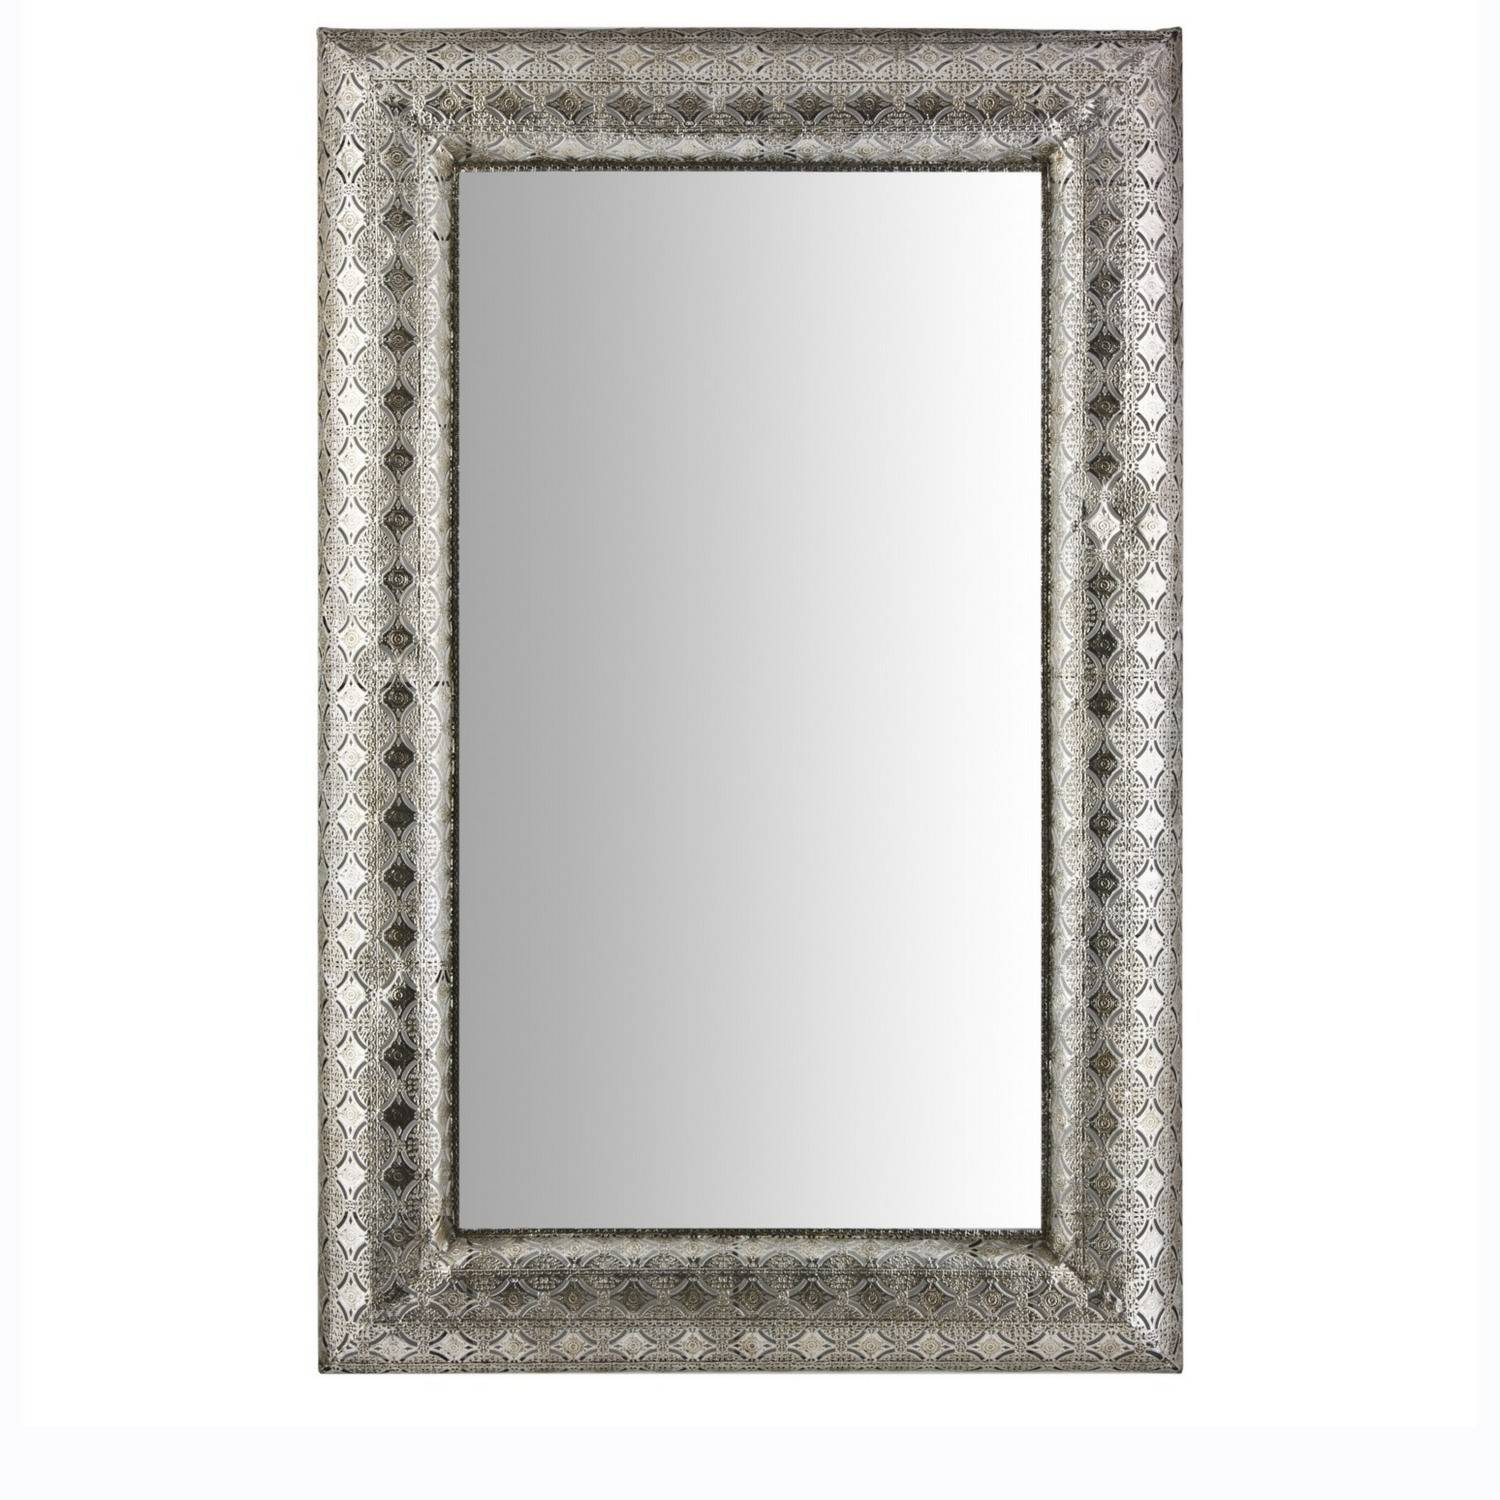 Large Moroccan Mirror Throughout Silver Ornate Wall Mirrors (View 14 of 25)